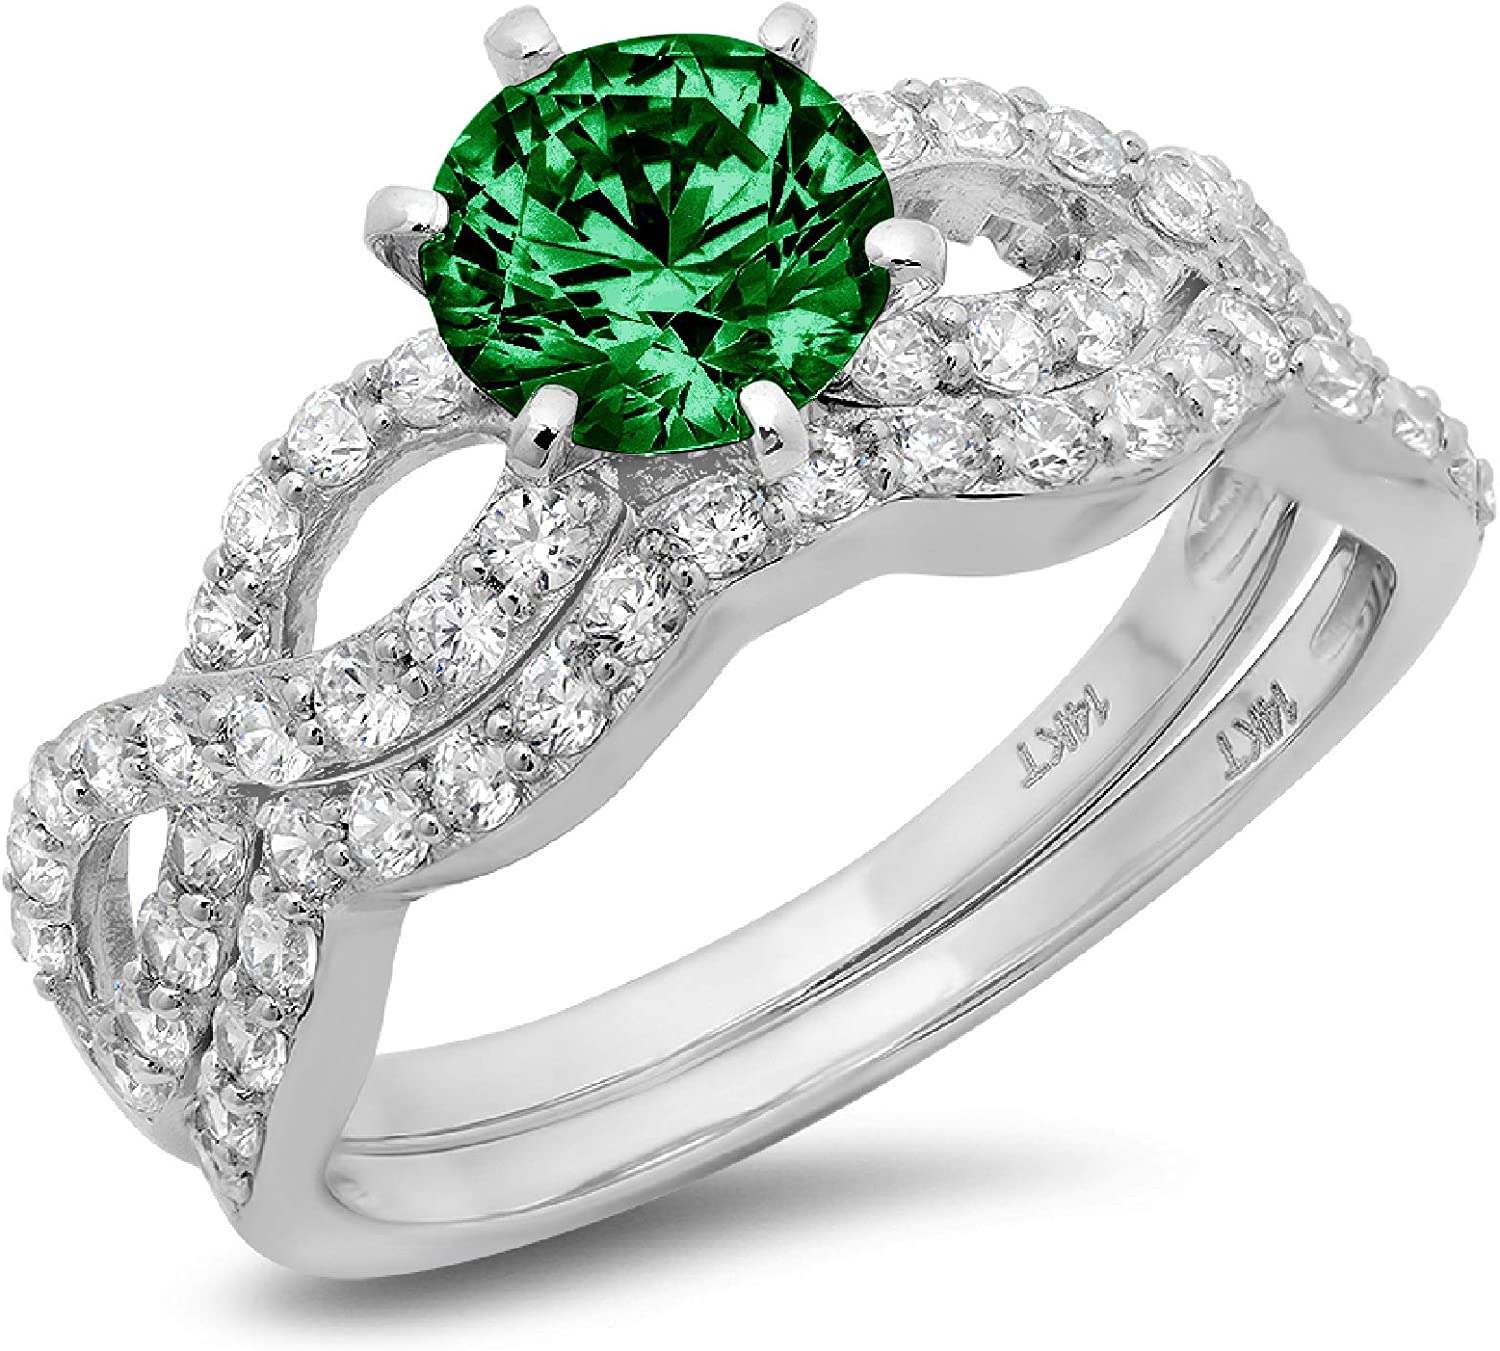 1.49ct Round Cut Halo Pave Solitaire Split Shank Accent VVS1 Ideal Flawless Simulated CZ Green Emerald Engagement Promise Designer Anniversary Wedding Bridal ring band set Curved 14k White Gold